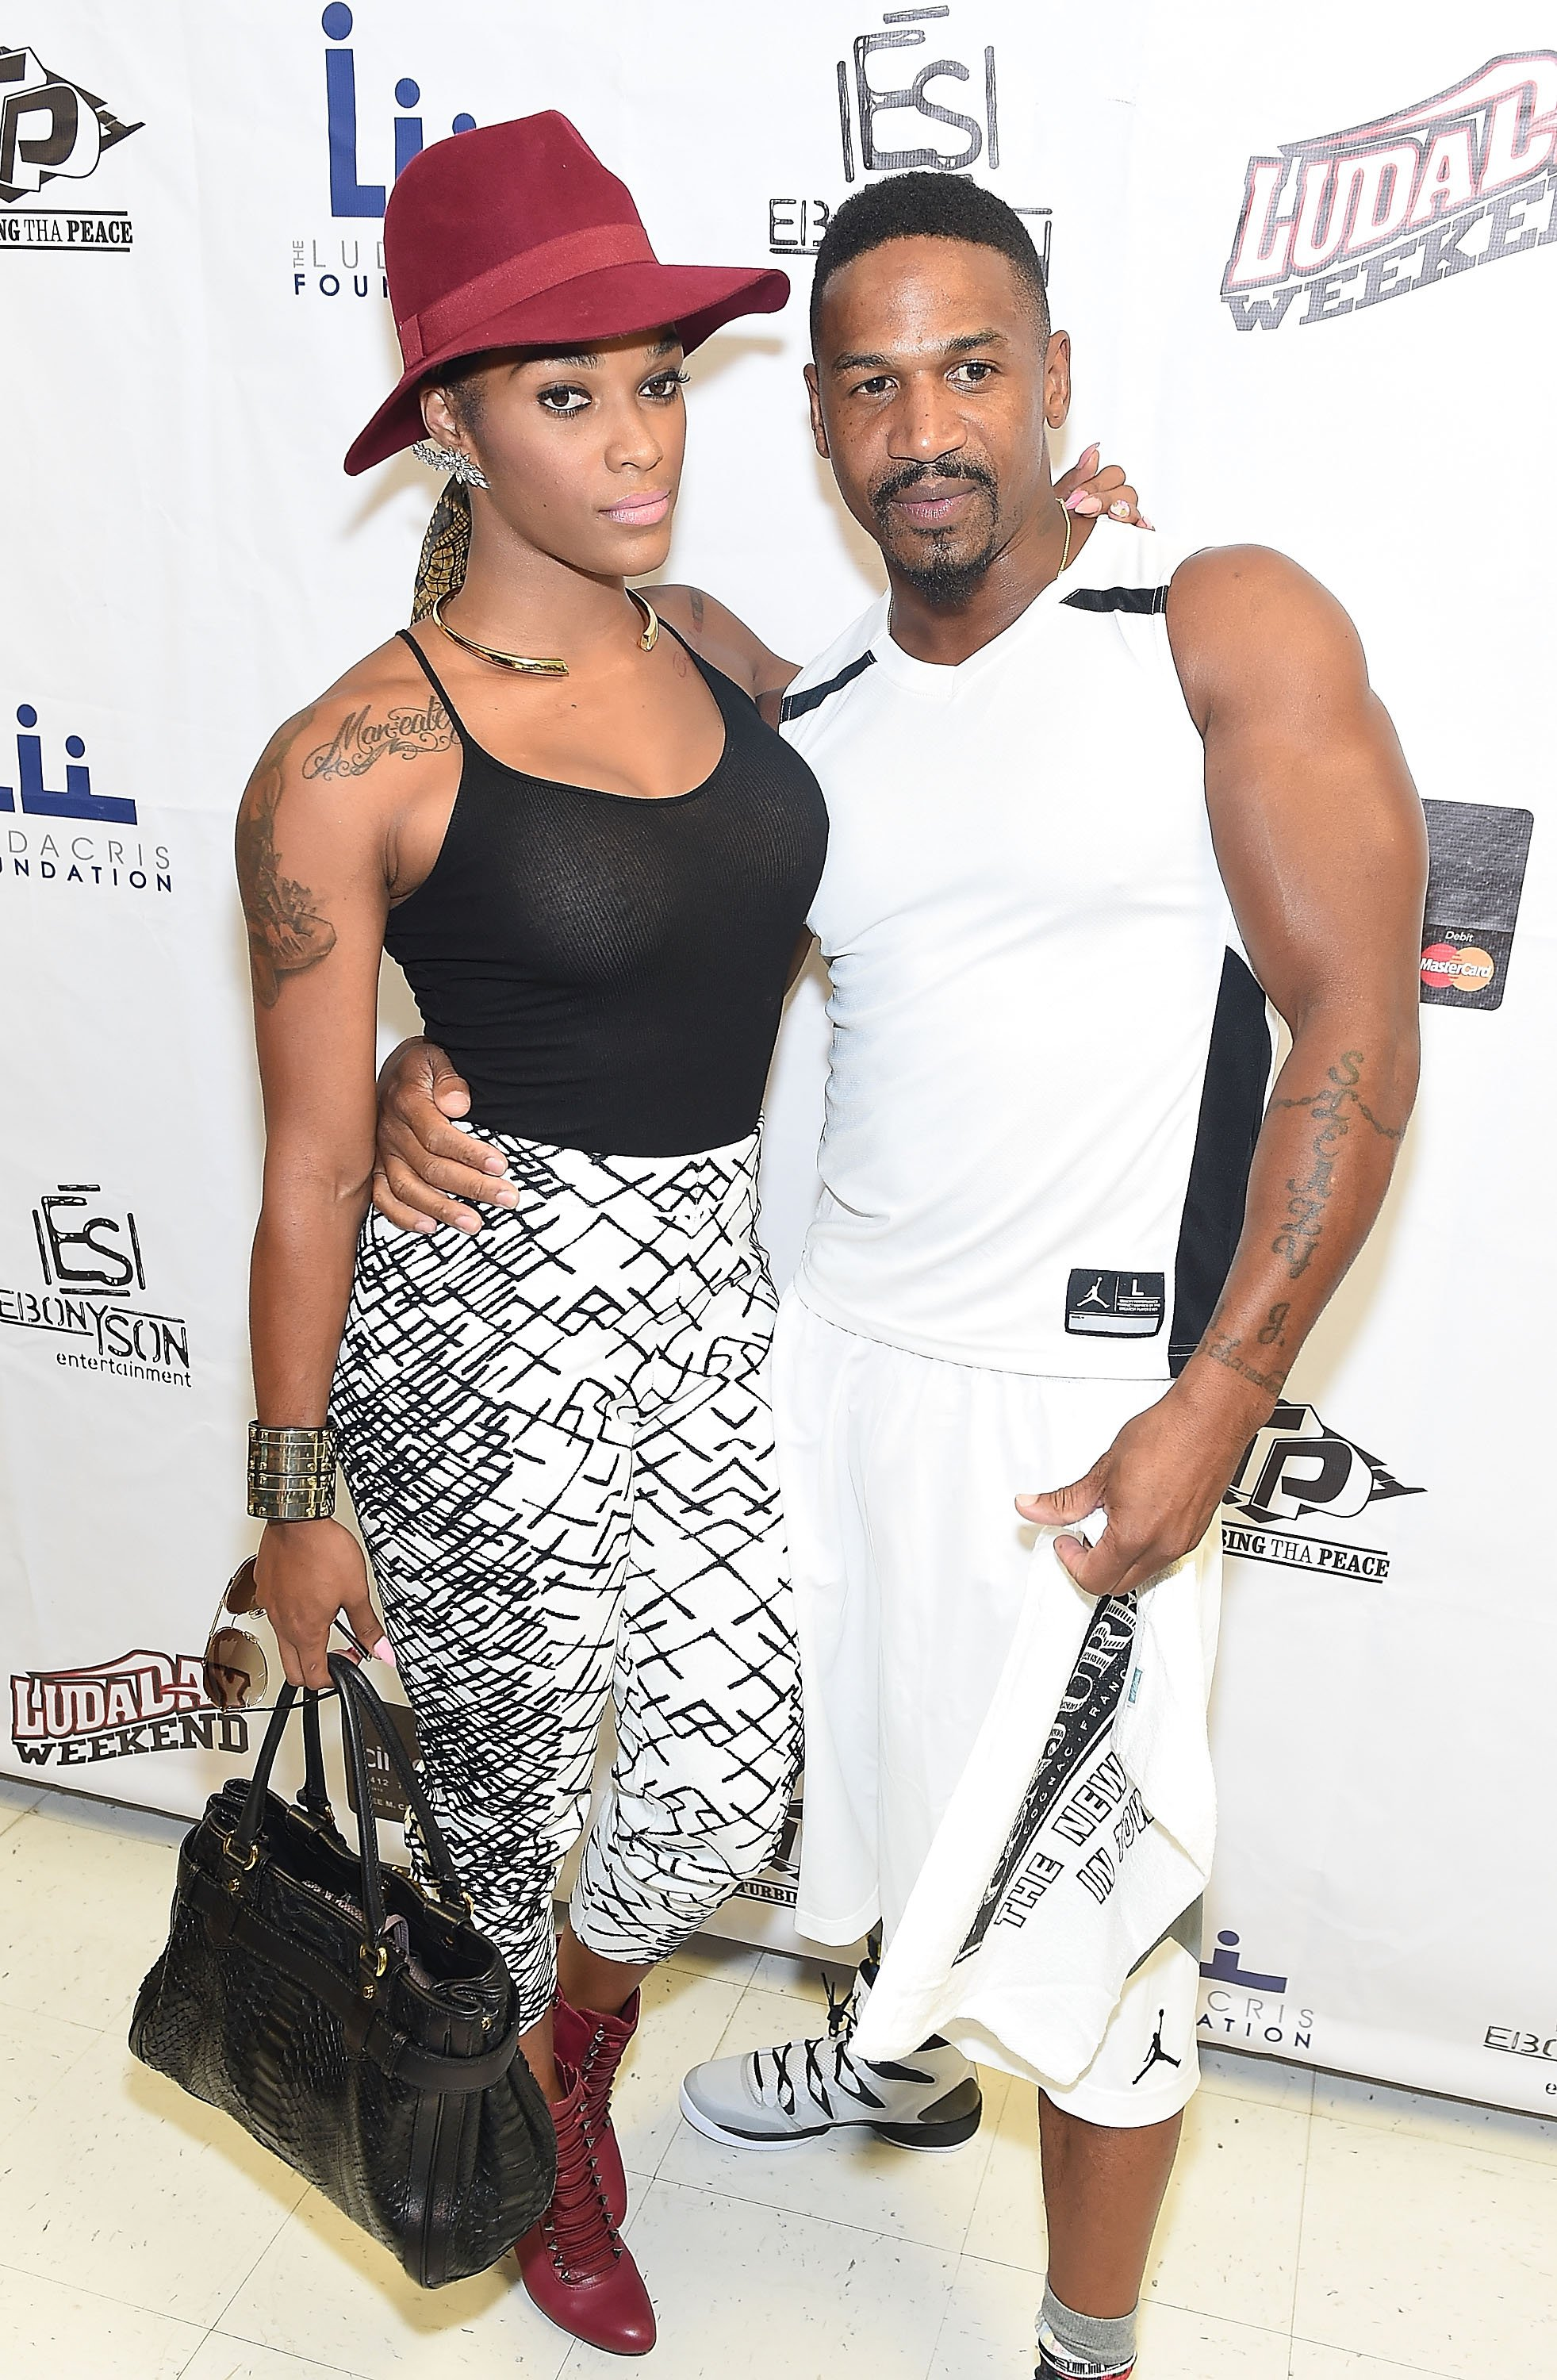 Love & Hip Hop Atlanta stars Joseline Hernandez and Stevie J during better days attending the LudaDay Celebrity Basketball Game at Georgia State University Sports Arena on August 31, 2014. | Source: Getty